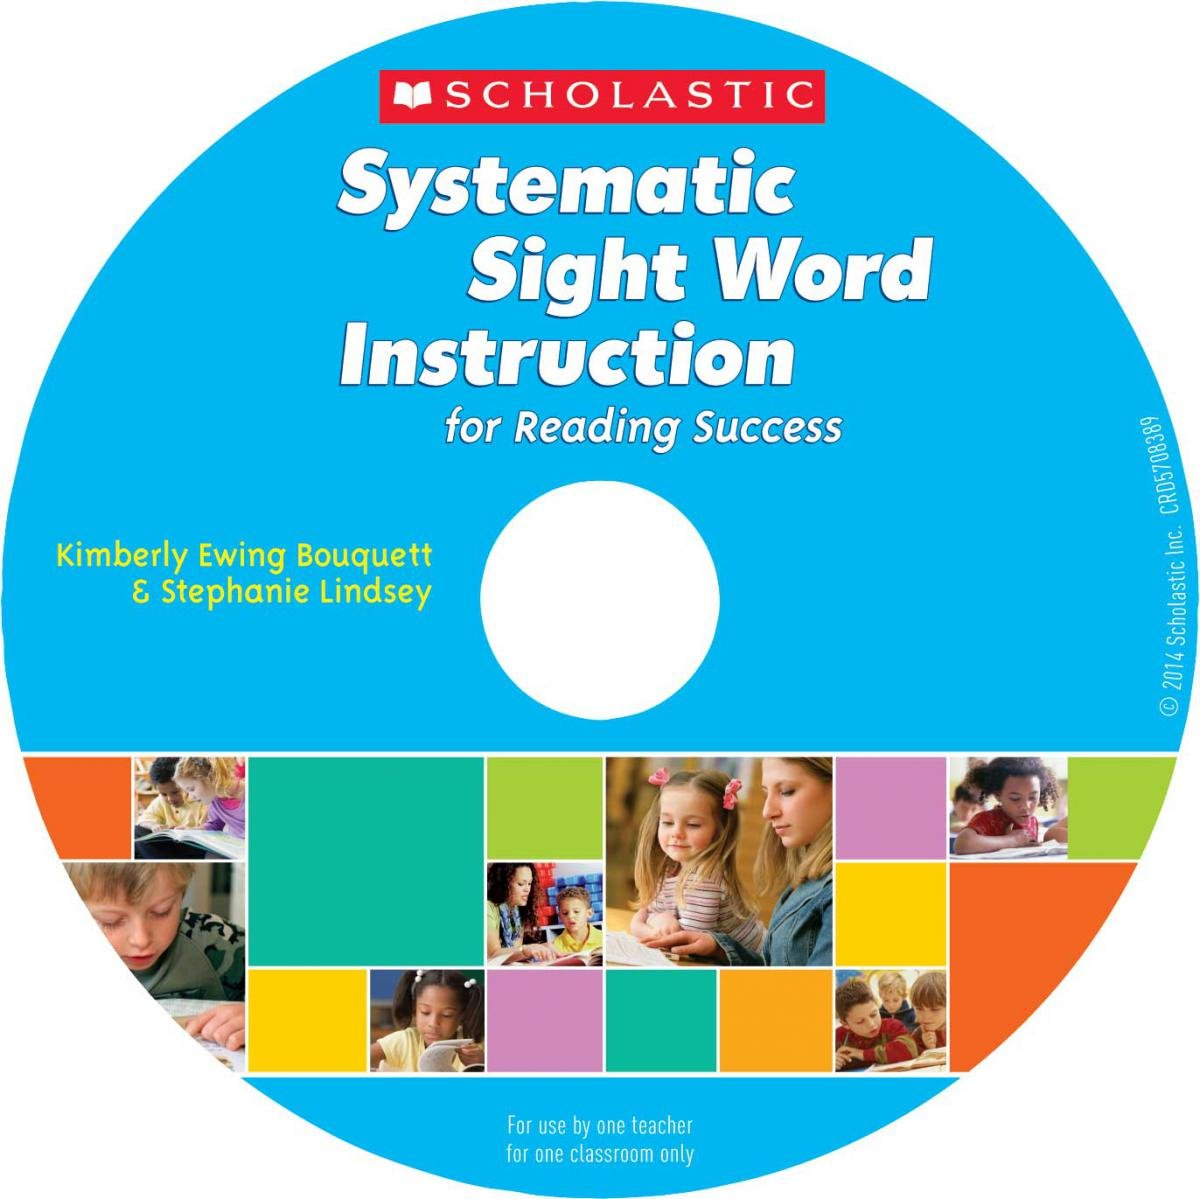 5 tips for sight word instruction.